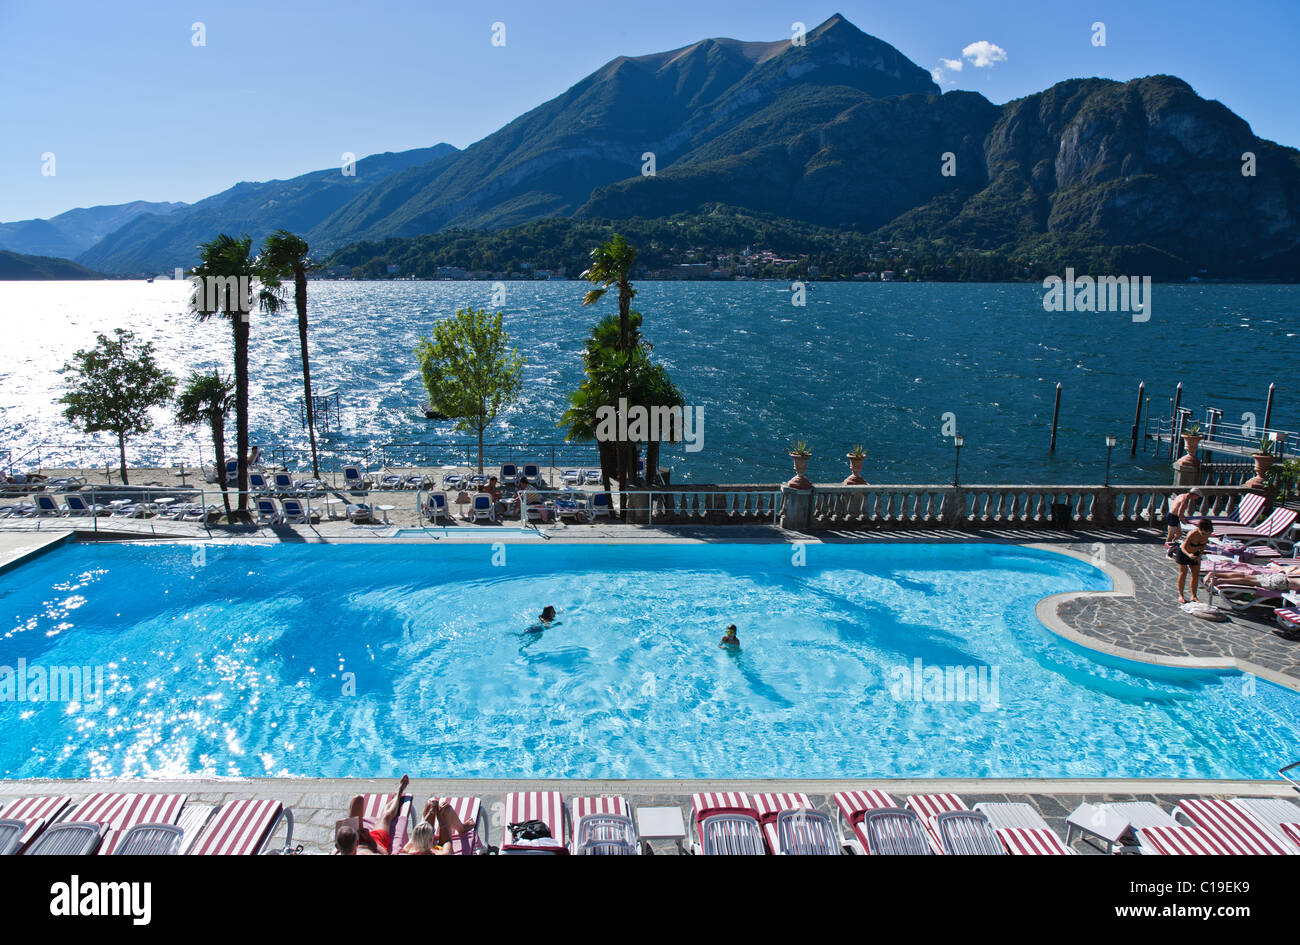 Italy Como Lake A Bellagio 39 S Hotel Swimming Pool Stock Photo Royalty Free Image 35244477 Alamy